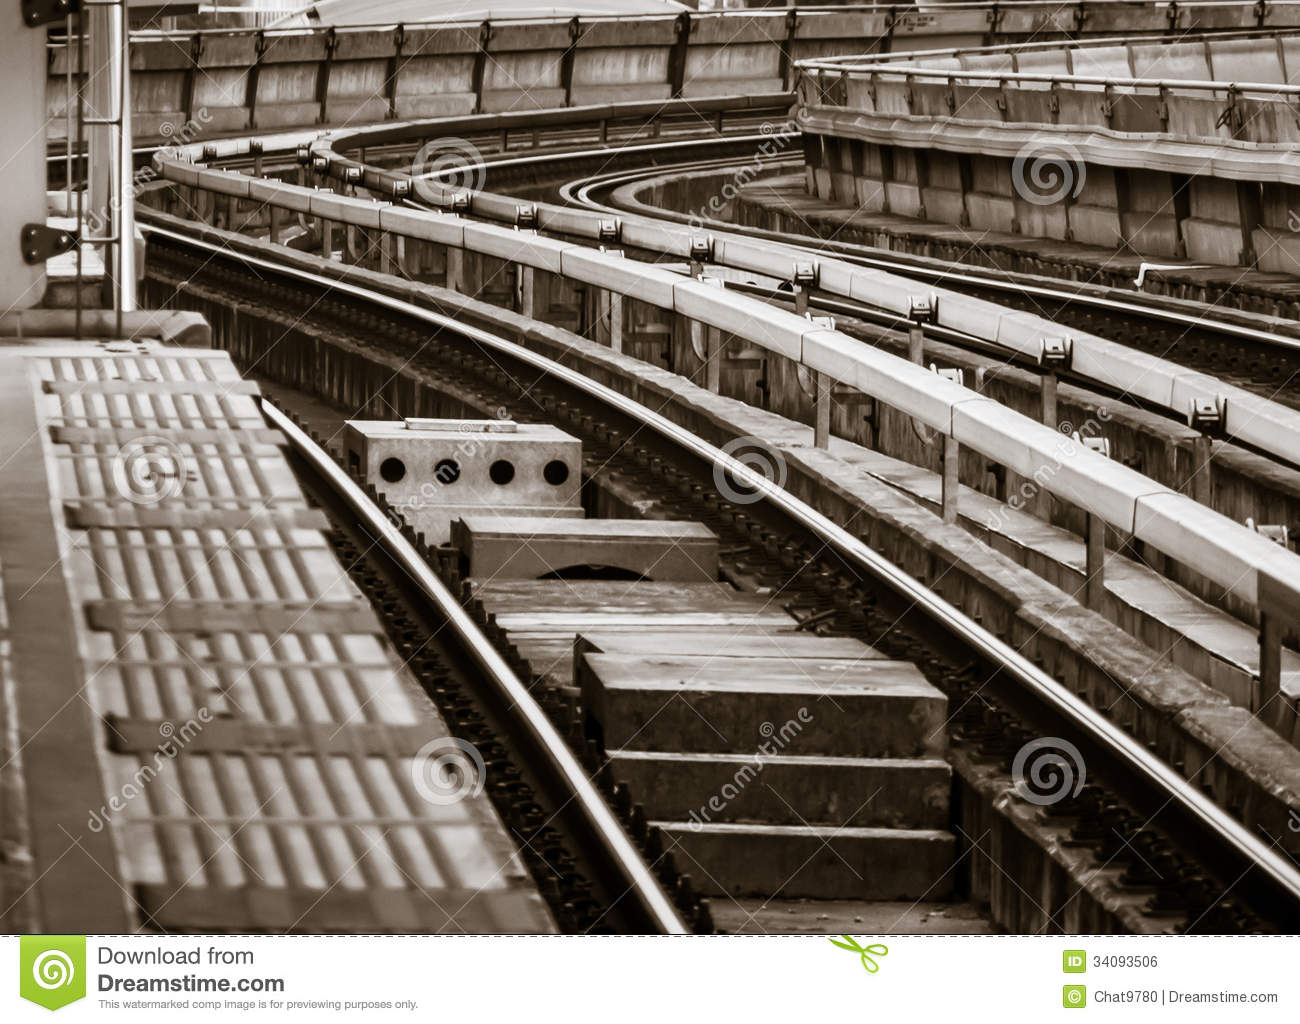 Fotos De Stock Chat9780: Electric Railway Curve Royalty Free Stock Image